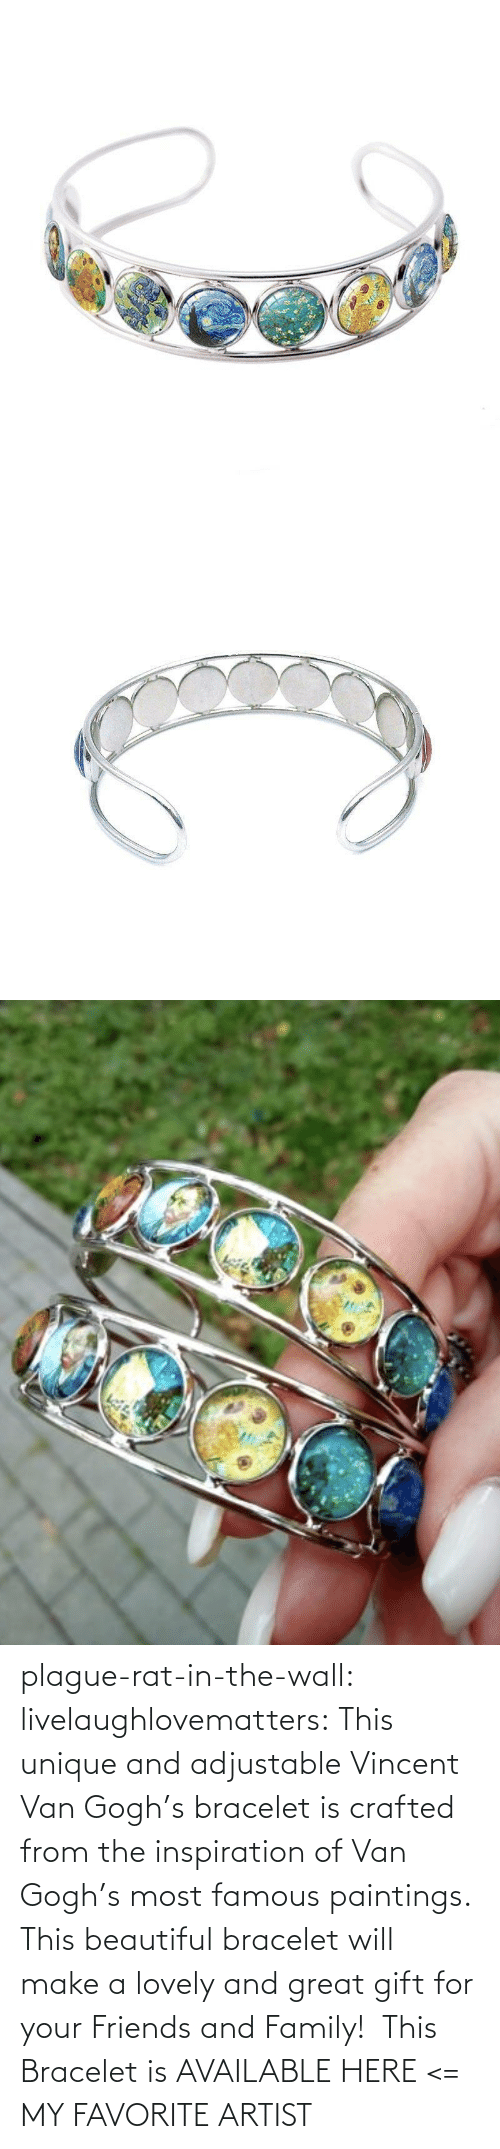 Beautiful, Family, and Friends: plague-rat-in-the-wall:  livelaughlovematters: This unique and adjustableVincent Van Gogh's bracelet is crafted from the inspiration of Van Gogh's most famous paintings. This beautiful bracelet will make a lovely and great gift for your Friends and Family! This Bracelet is AVAILABLE HERE <=  MY FAVORITE ARTIST